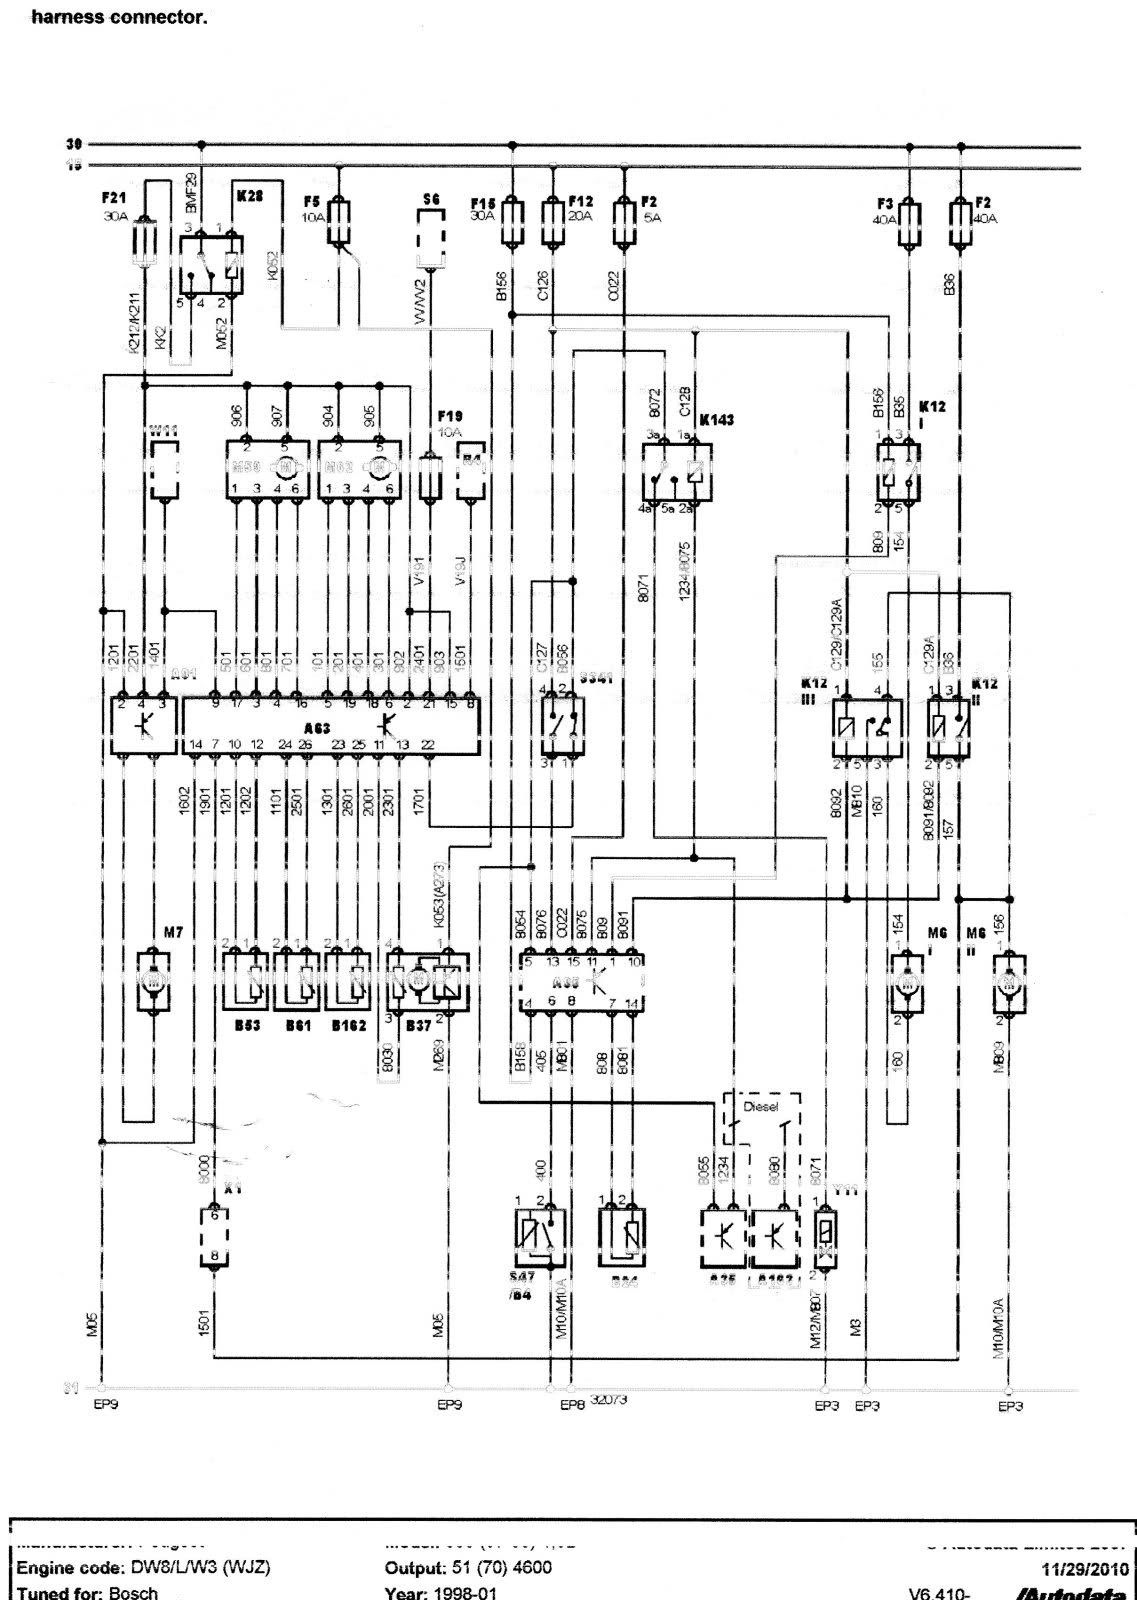 Peugeot 504 Wiring Diagram Library 206 Central Locking Diagrams